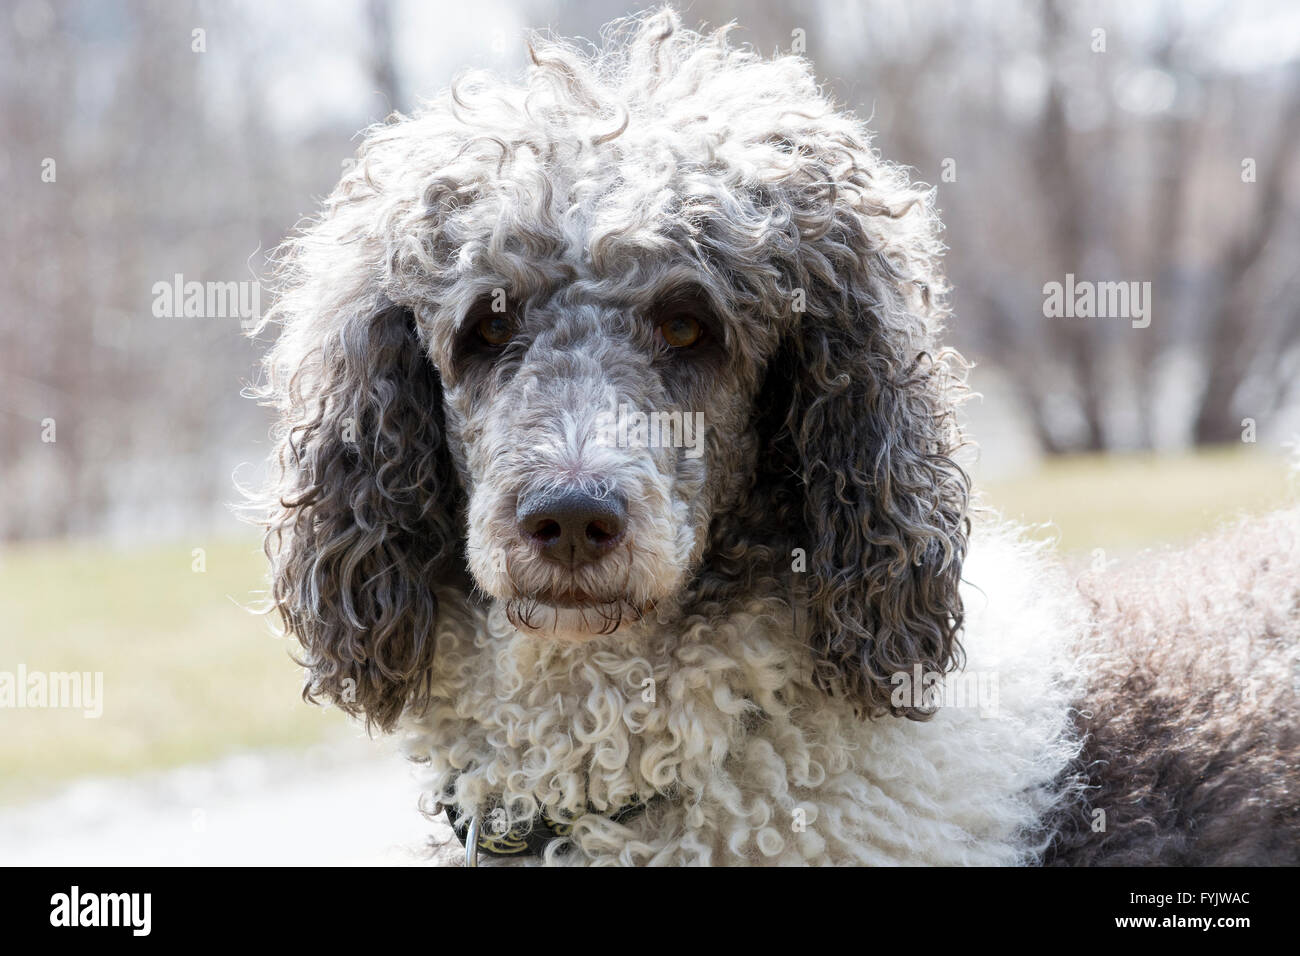 head shot of a gray and white standadr poodle shot on natural light in a grayish background - Stock Image